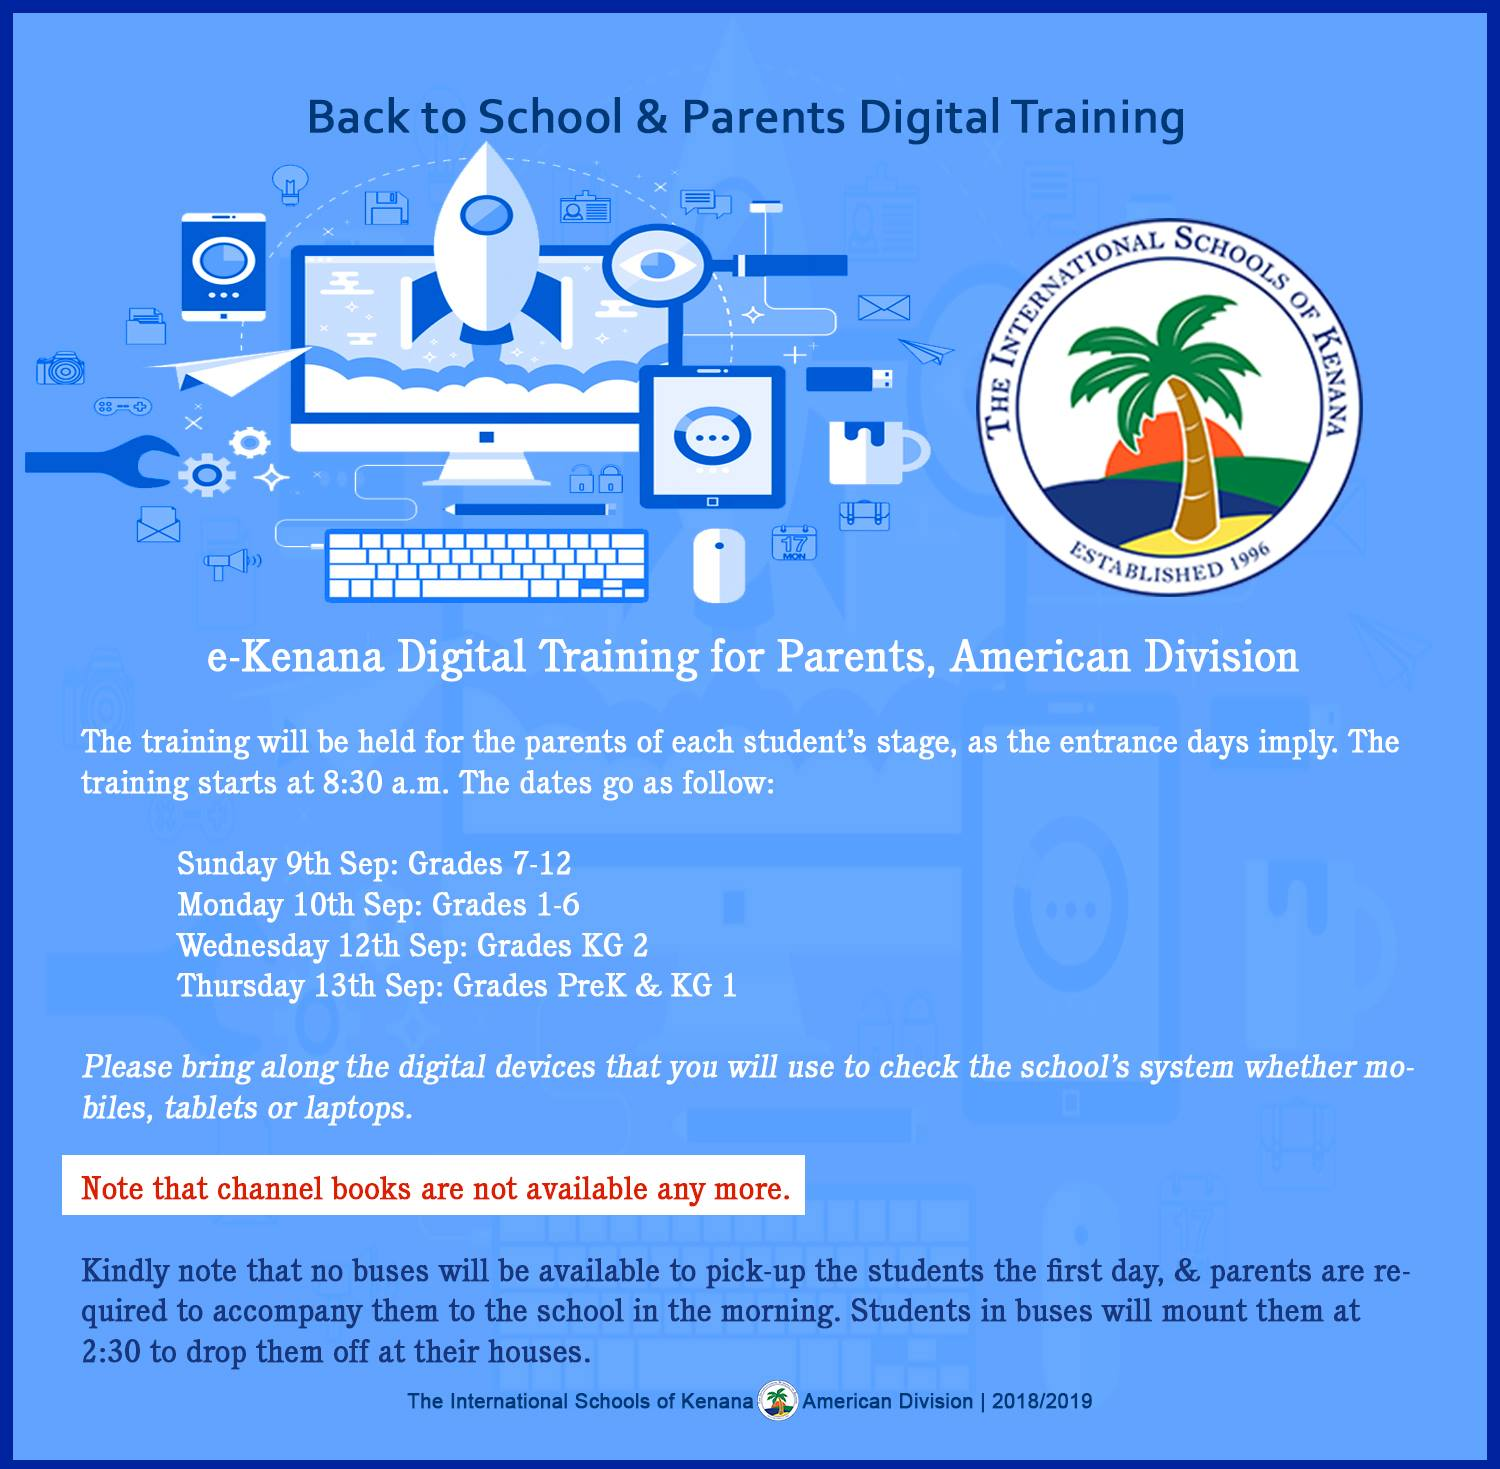 International Schools of kenana | American division - Parents Digital Training